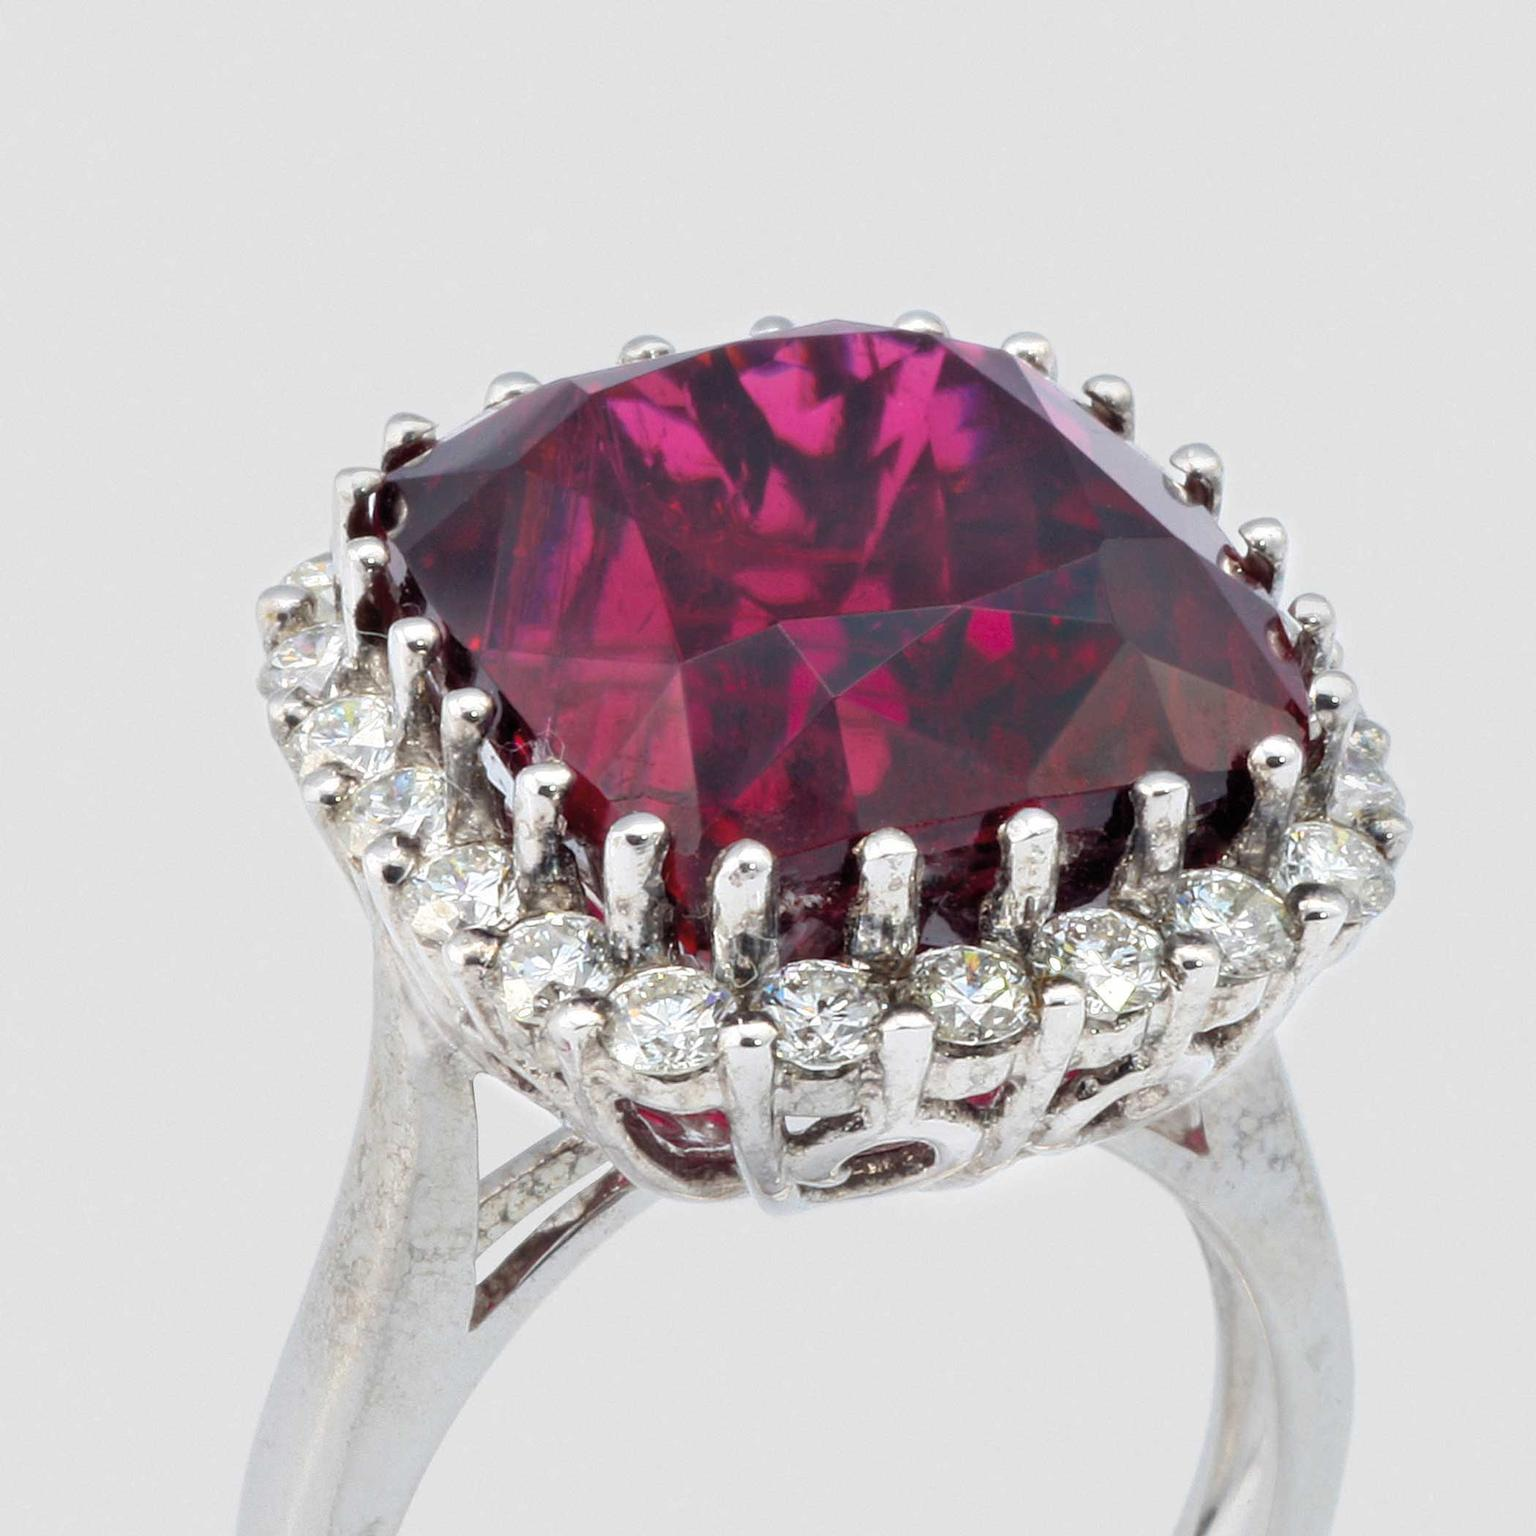 David Jerome Collection rubellite and diamond-set ring